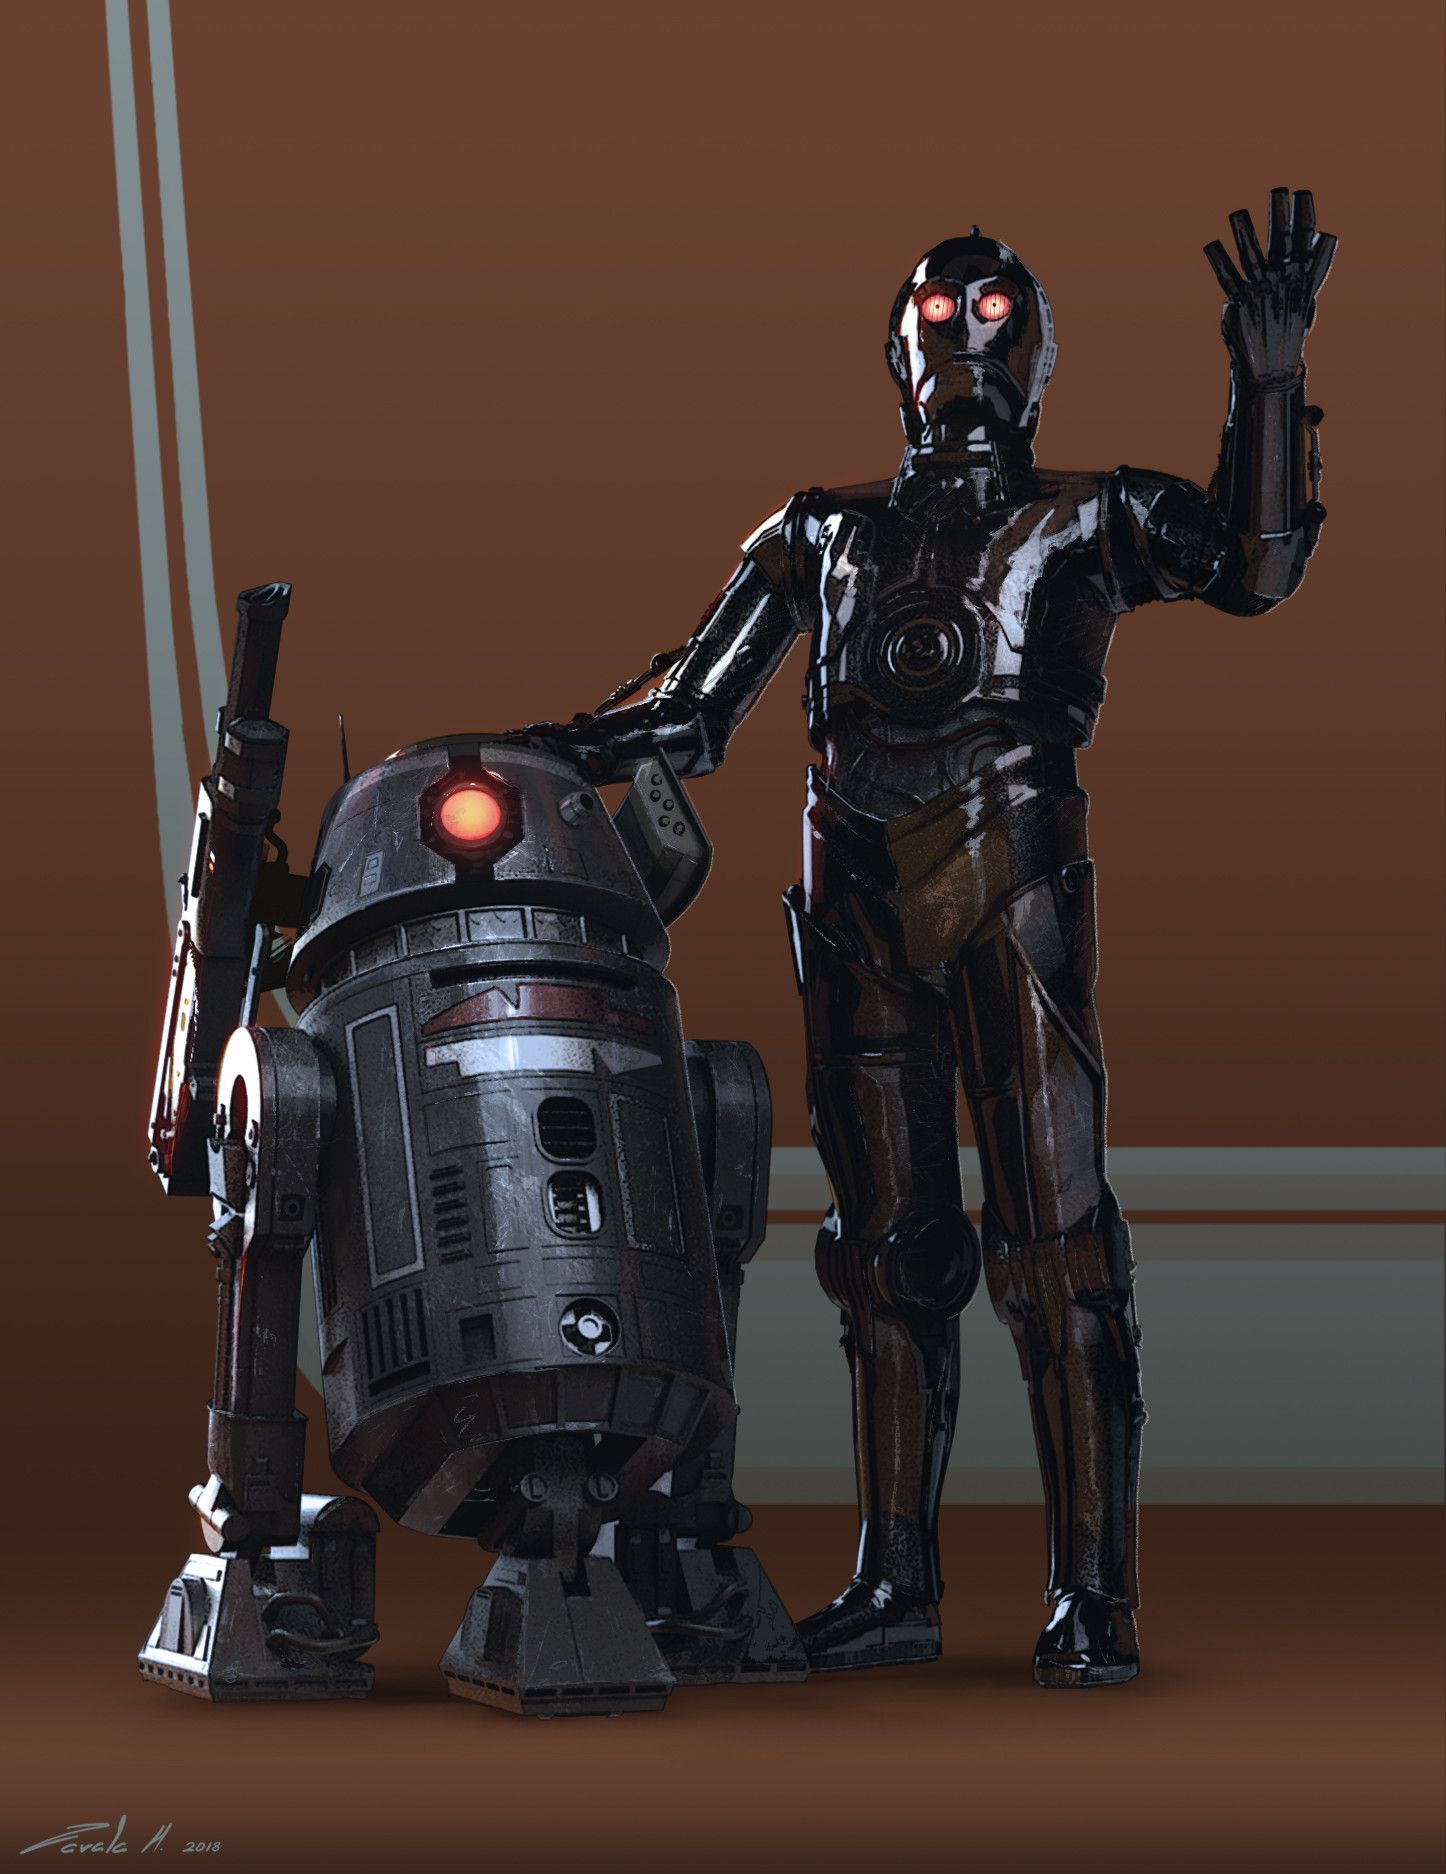 Artstation Bt 1 And 0 0 0 Stephen Zavala Star Wars Rpg Star Wars Canon Star Wars Droids